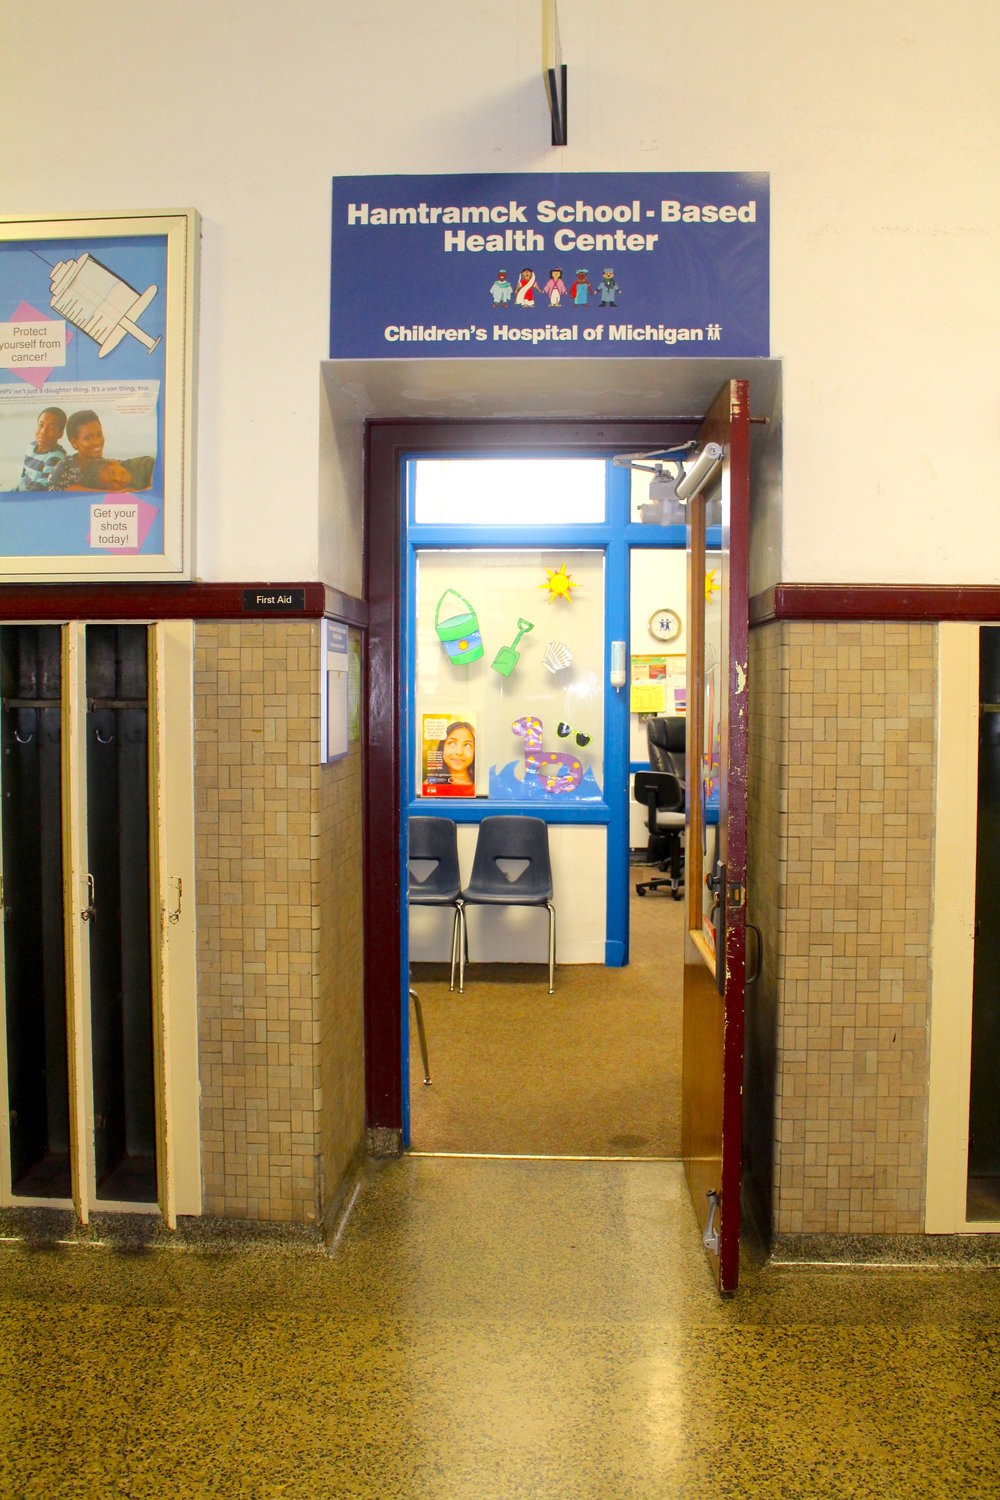 Hamtramck School-Based Health Center 1.JPG